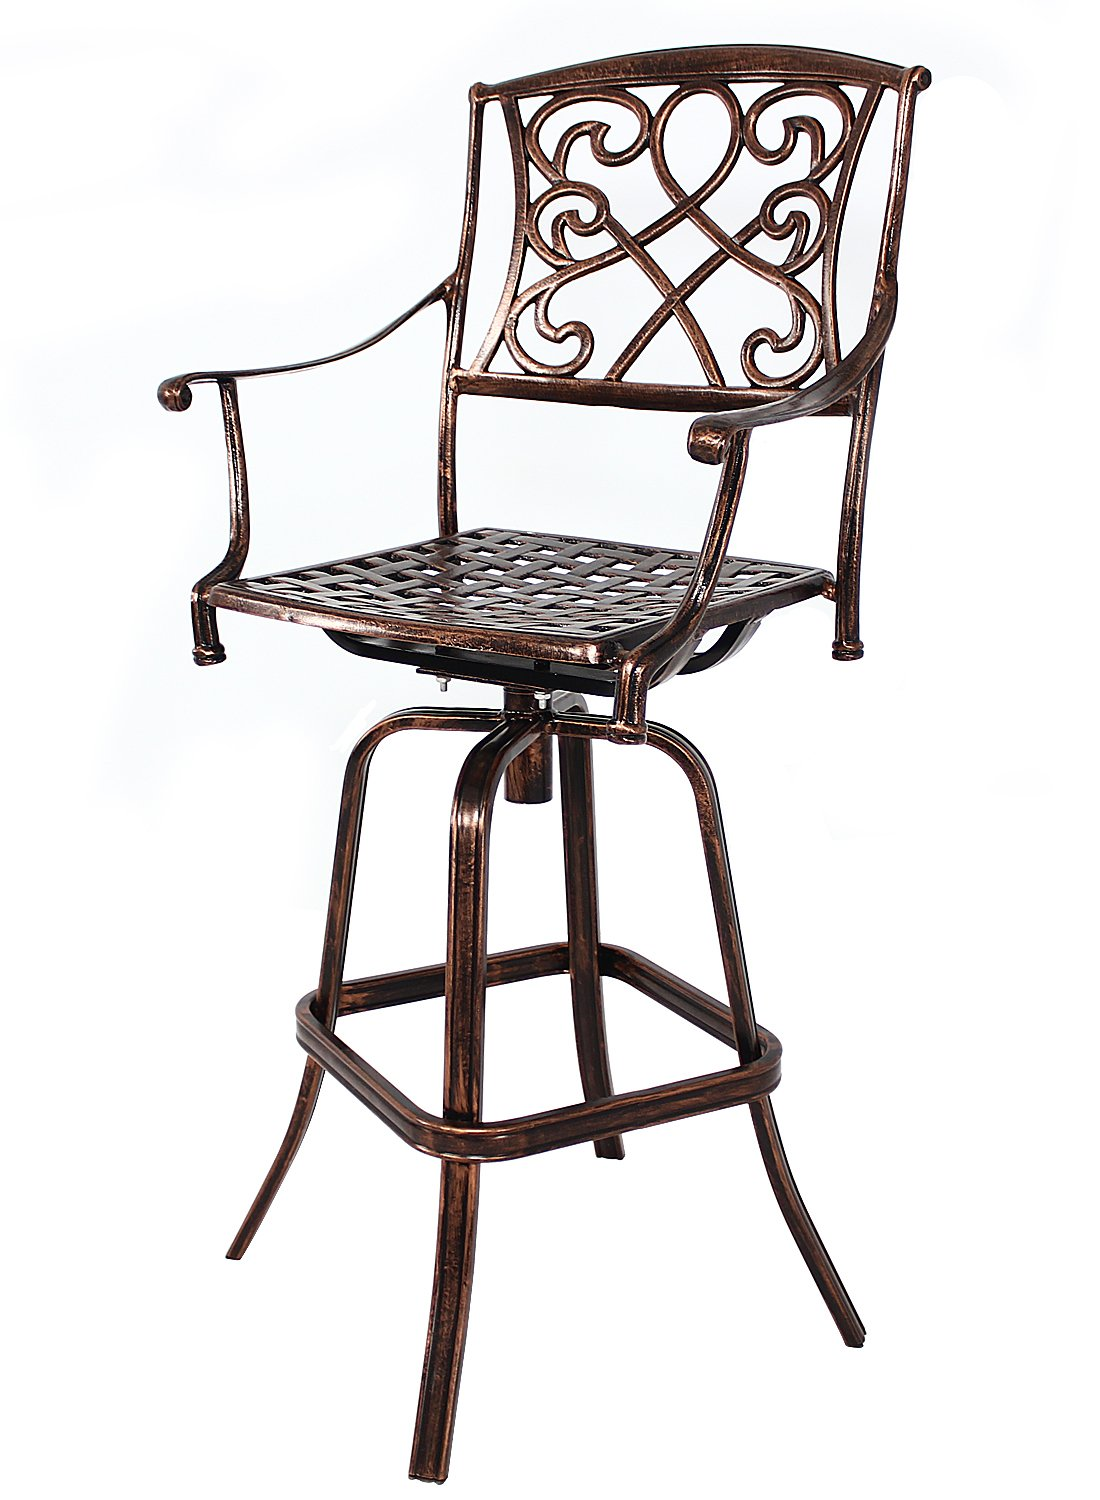 HOMEFUN Outdoor Swivel Bar Stools, Bar Height Chairs, Cast Aluminum Bistro Pub Patio Furniture (Antique Bronze)